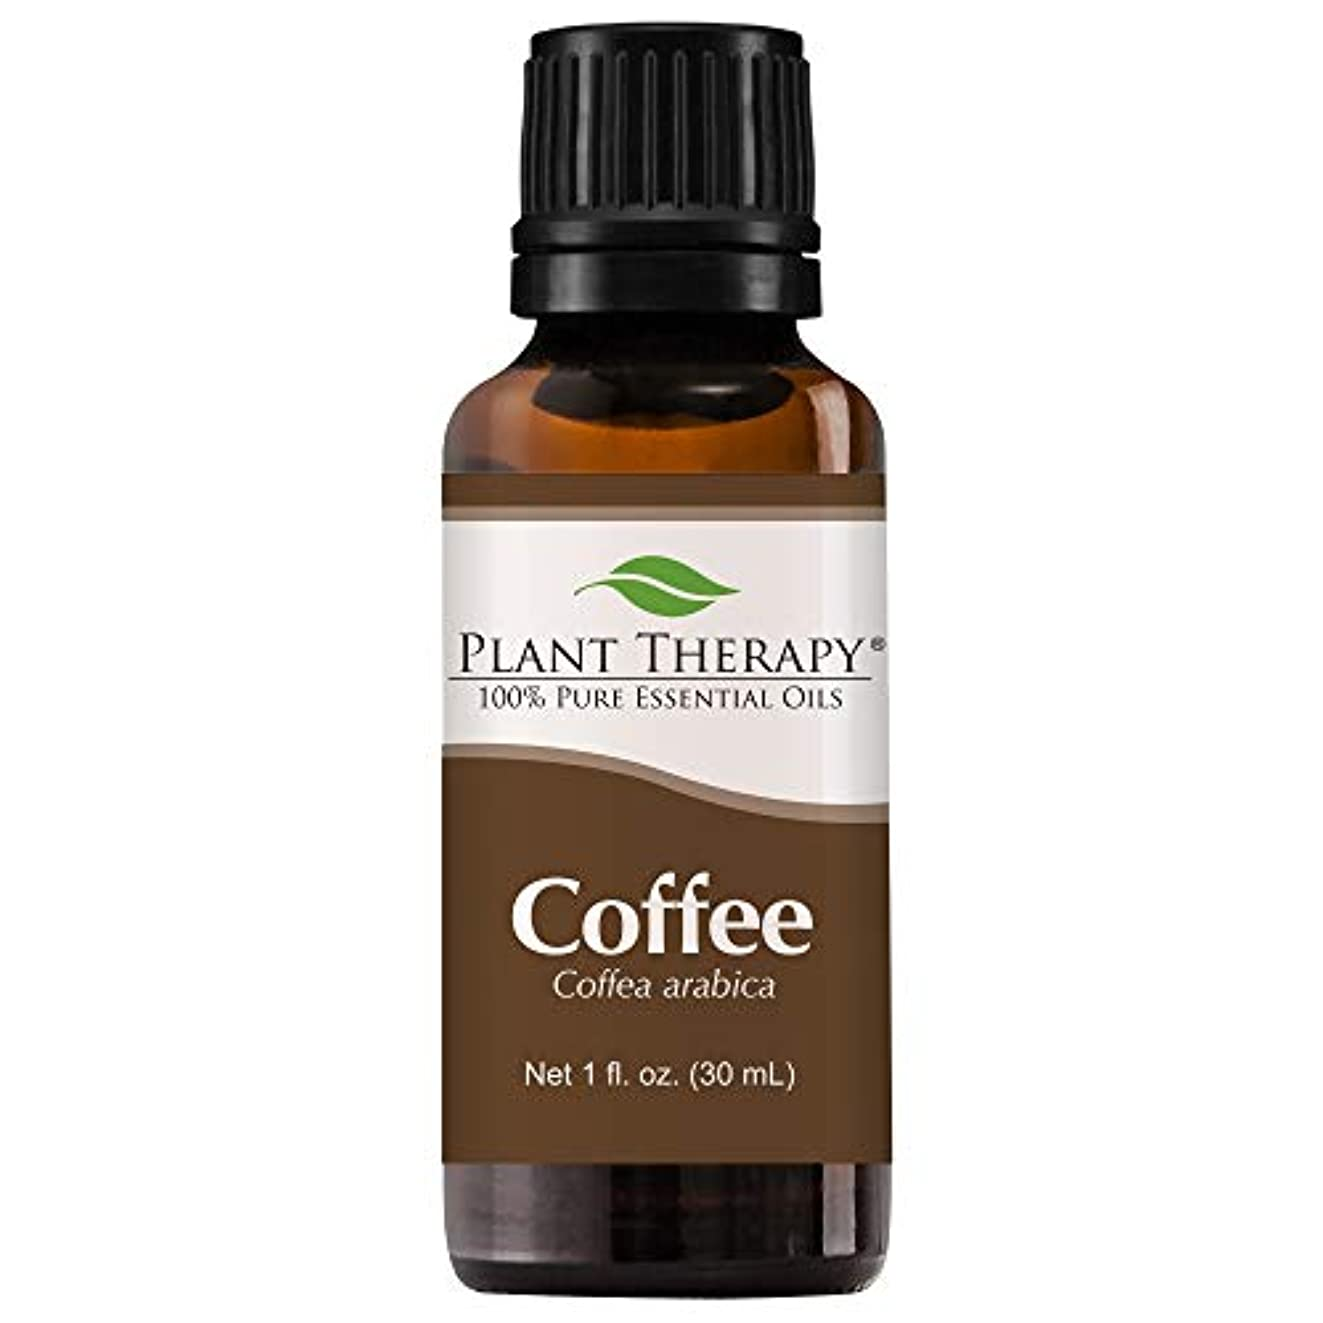 Coffee Essential Oil. 30 ml (1 oz). 100% Pure, Undiluted, Therapeutic Grade. by Plant Therapy Essential Oils